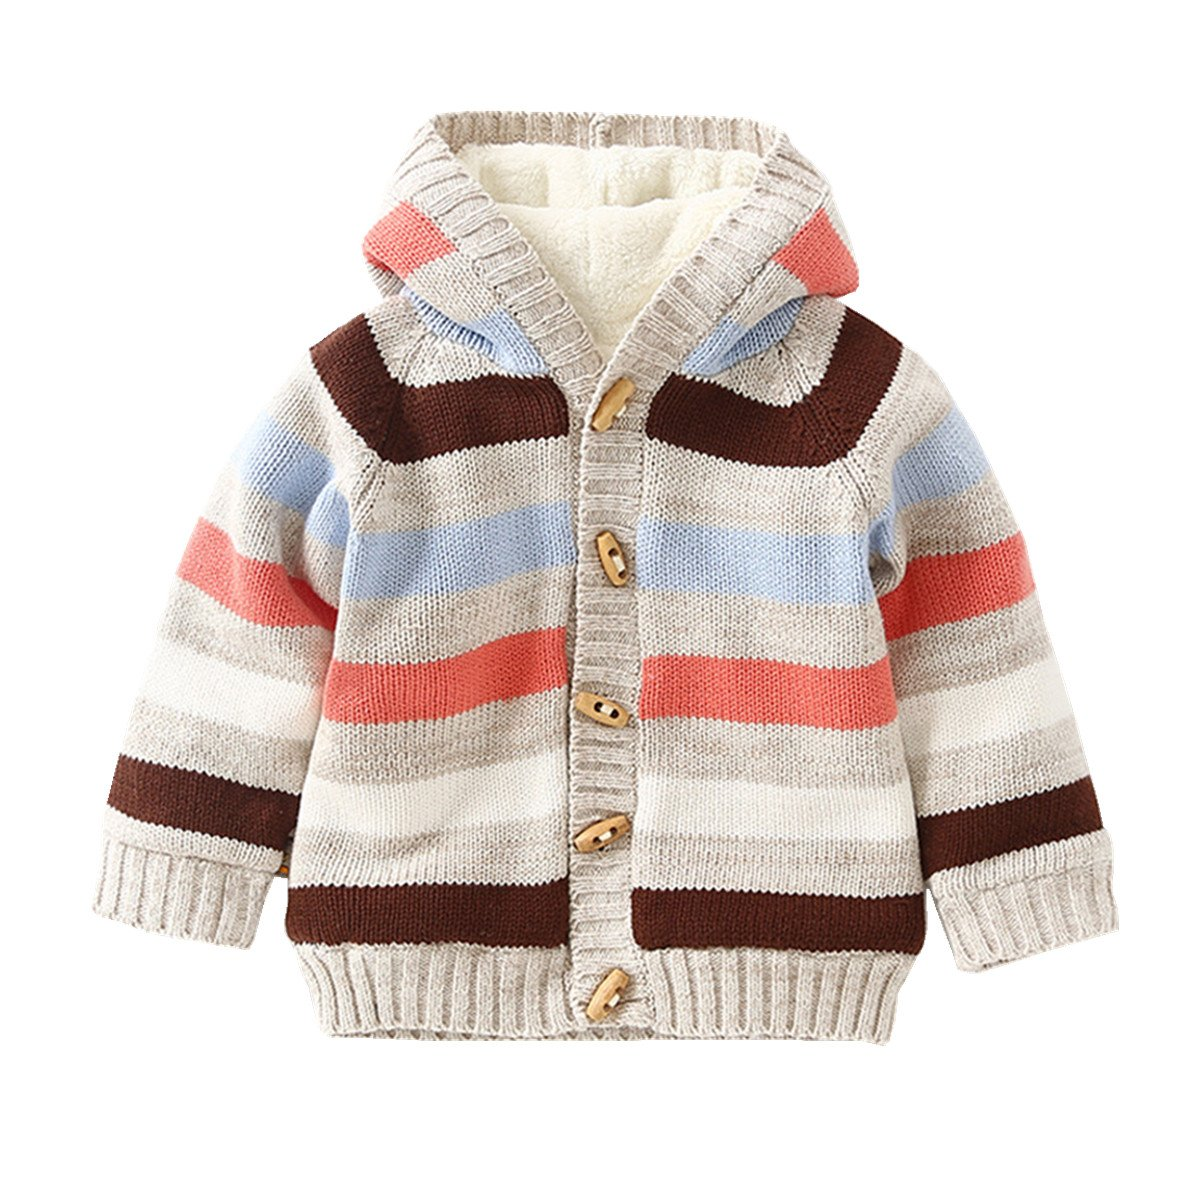 Dealone Baby Toddler Boys Girls Striped Long Sleeve Sweaters Cardigan Warm Outerwear Jacket (12-18 Months Tag Size: 2A, Beige)